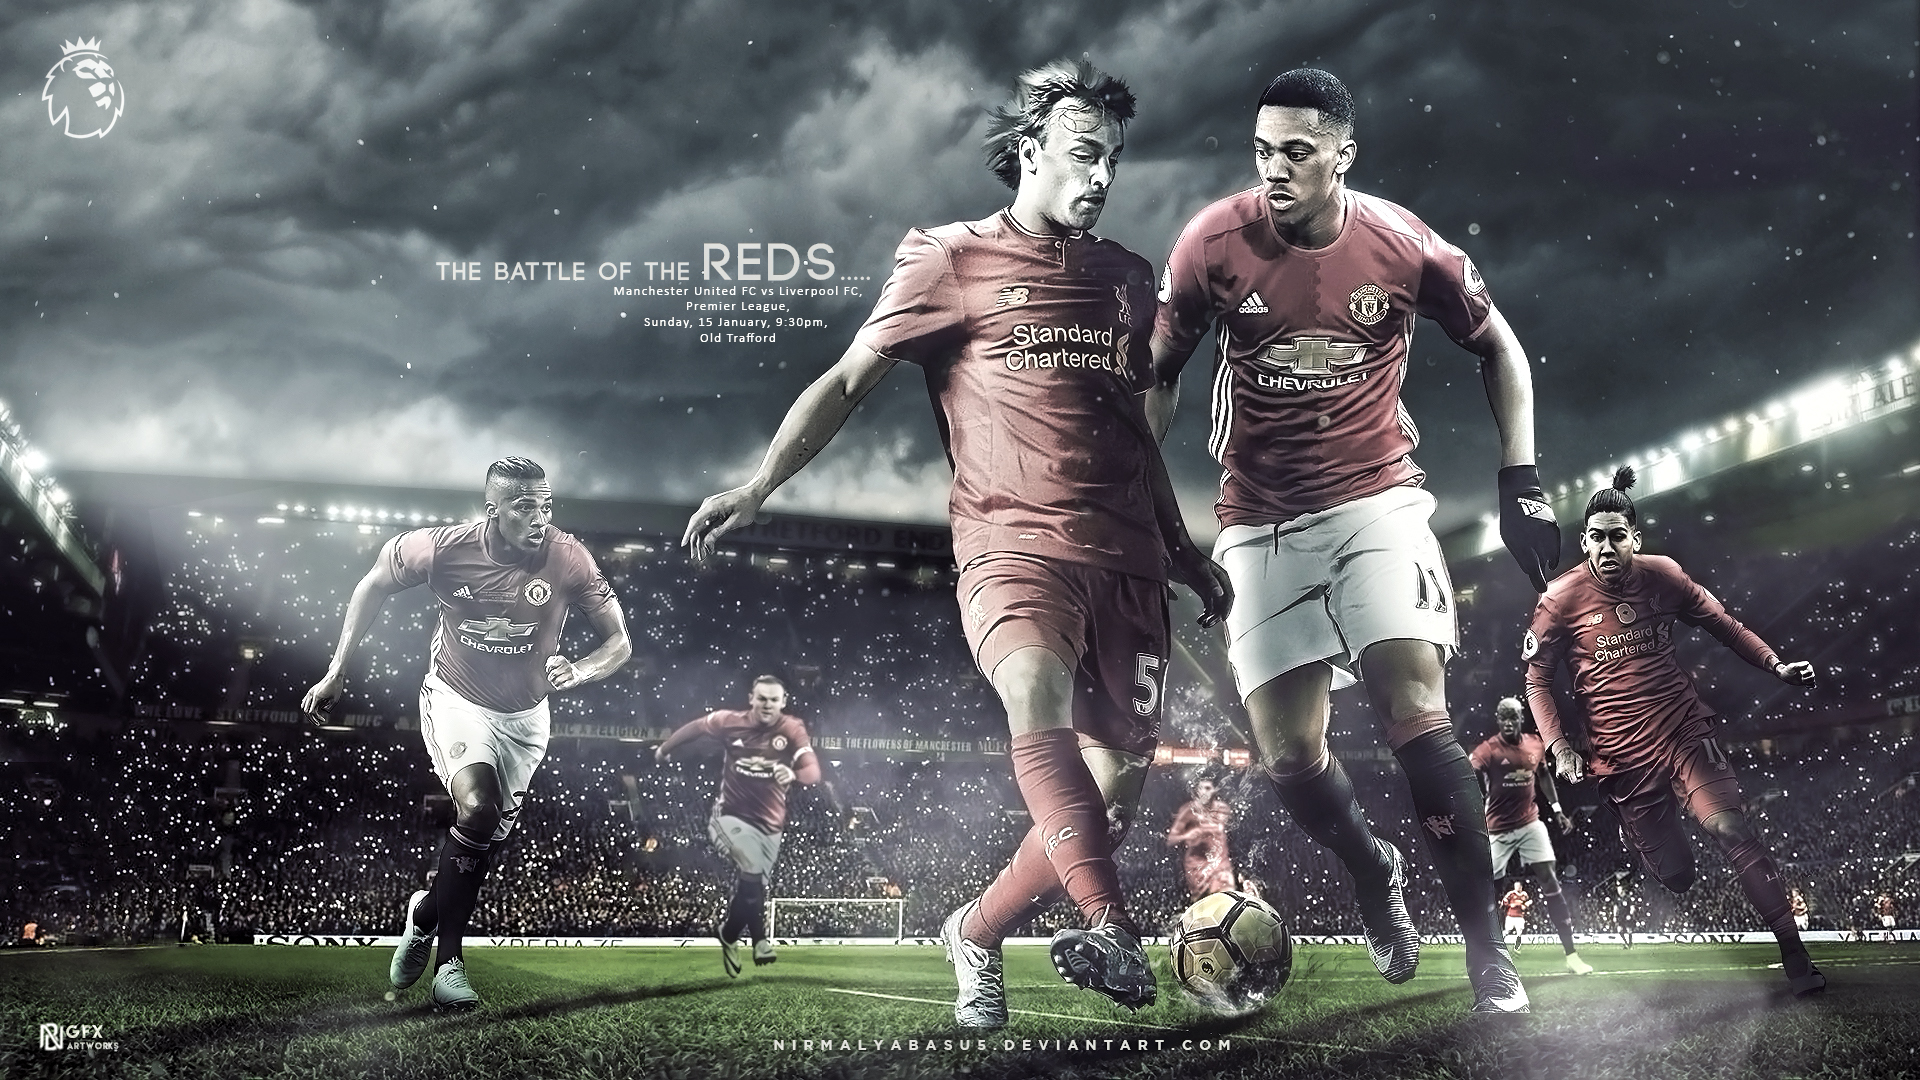 Manchester United vs Liverpool Matchday Wallpaper by 1920x1080